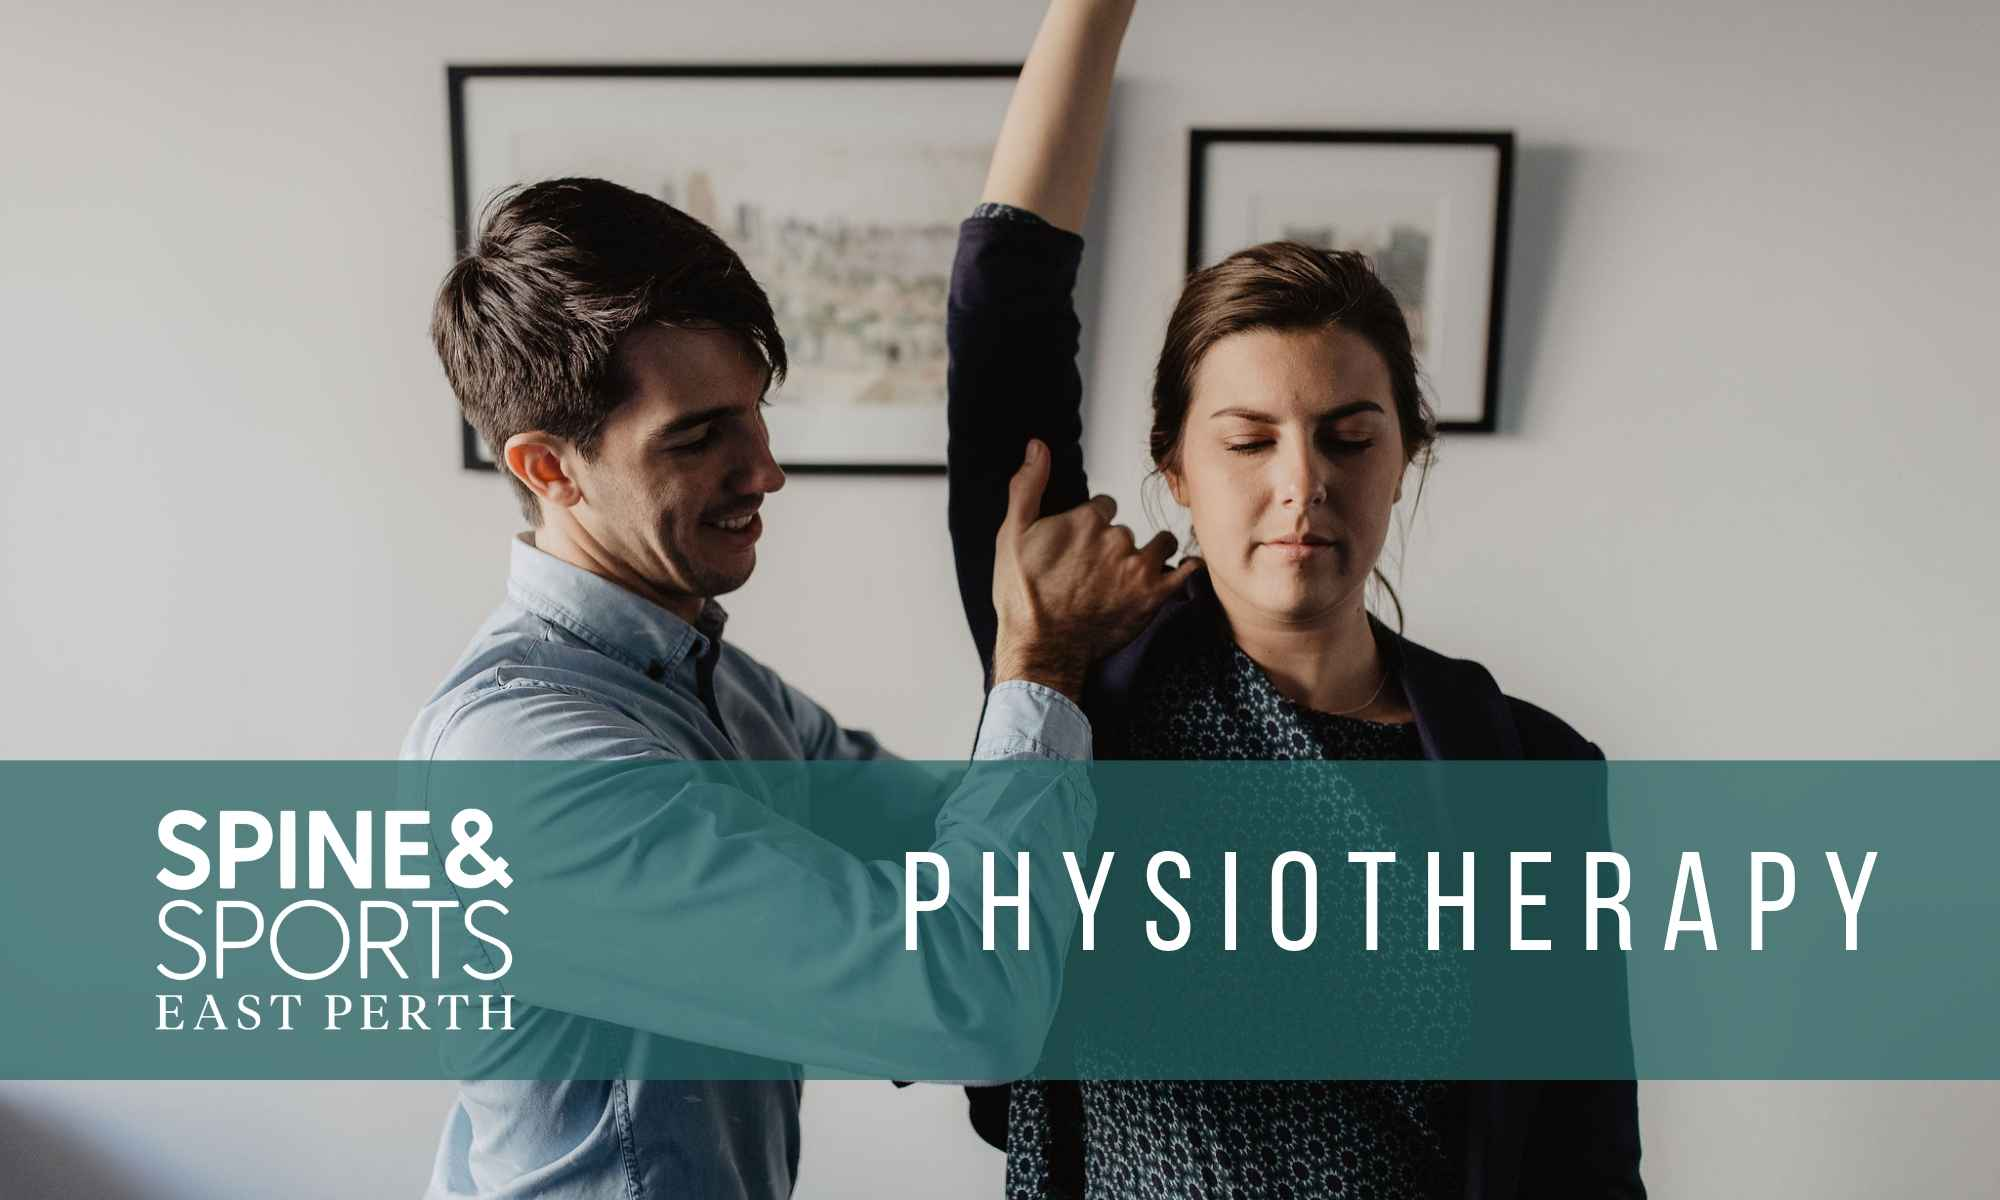 East Perth Physiotherapy at Spine & Sports Centre.jpg